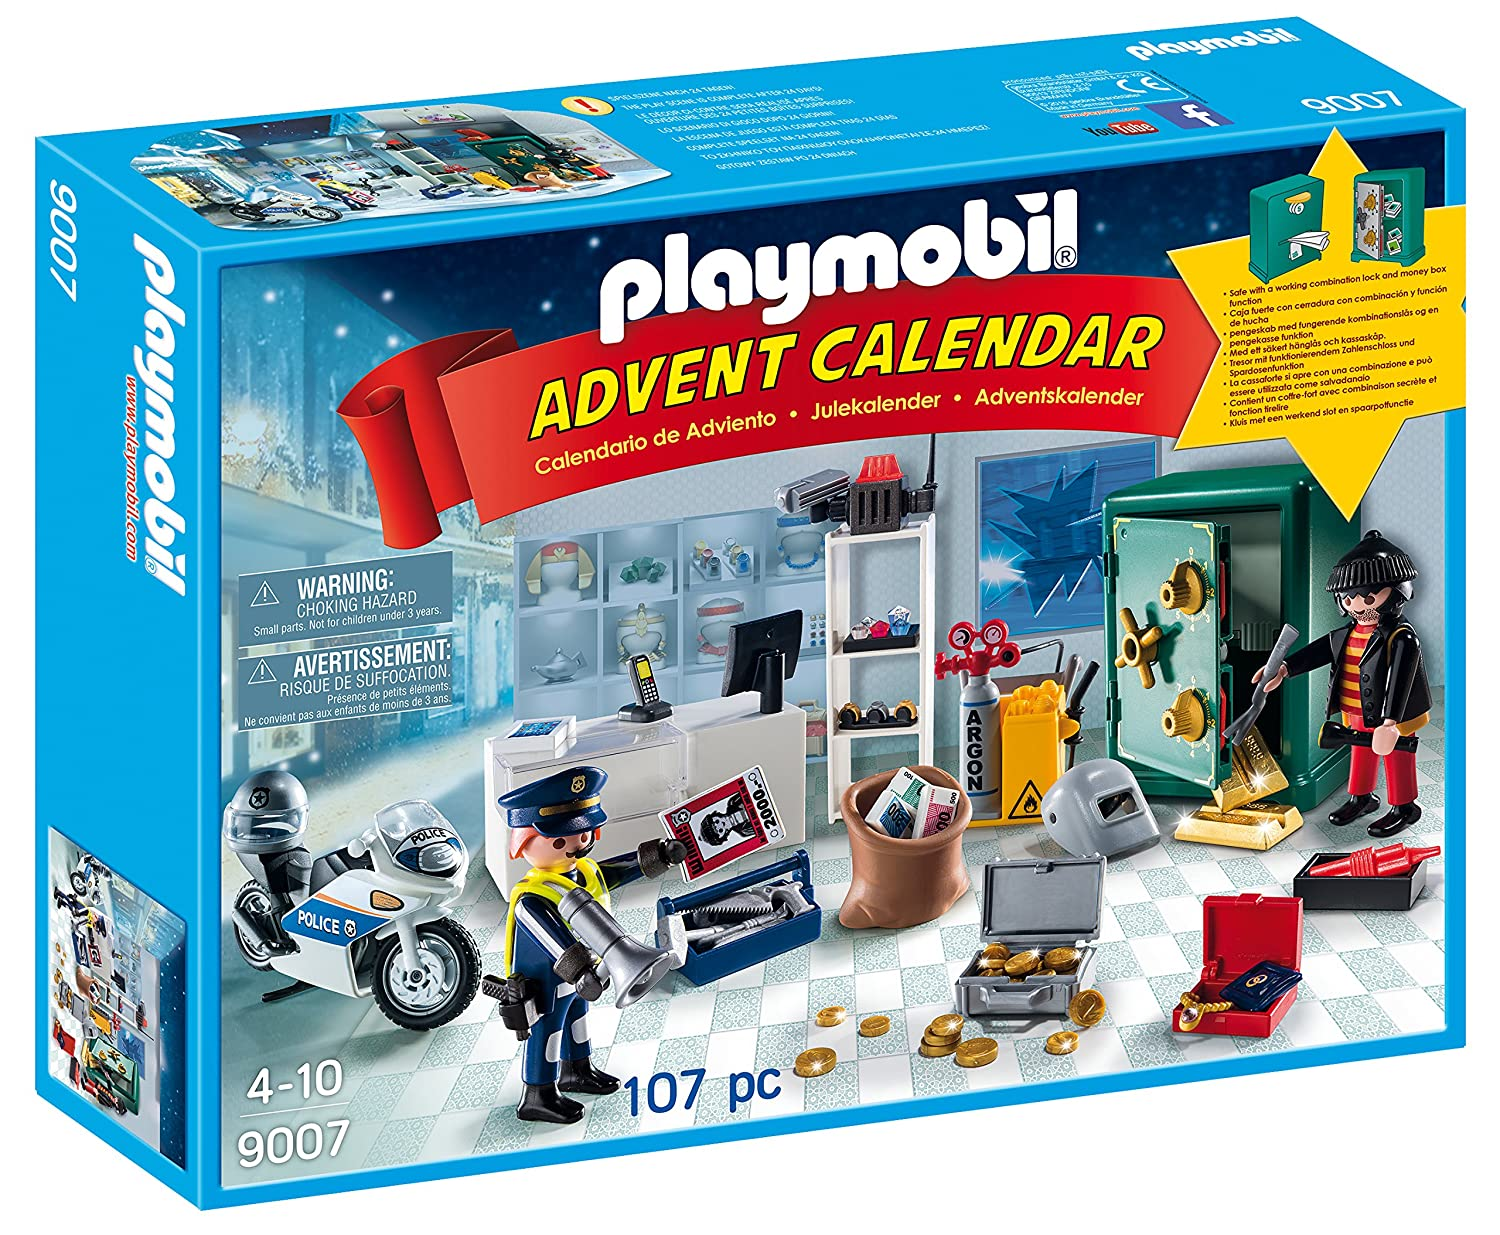 PLAYMOBIL® Advent Calendar - Jewel Thief Police Operation Playmobil - Cranbury 9007